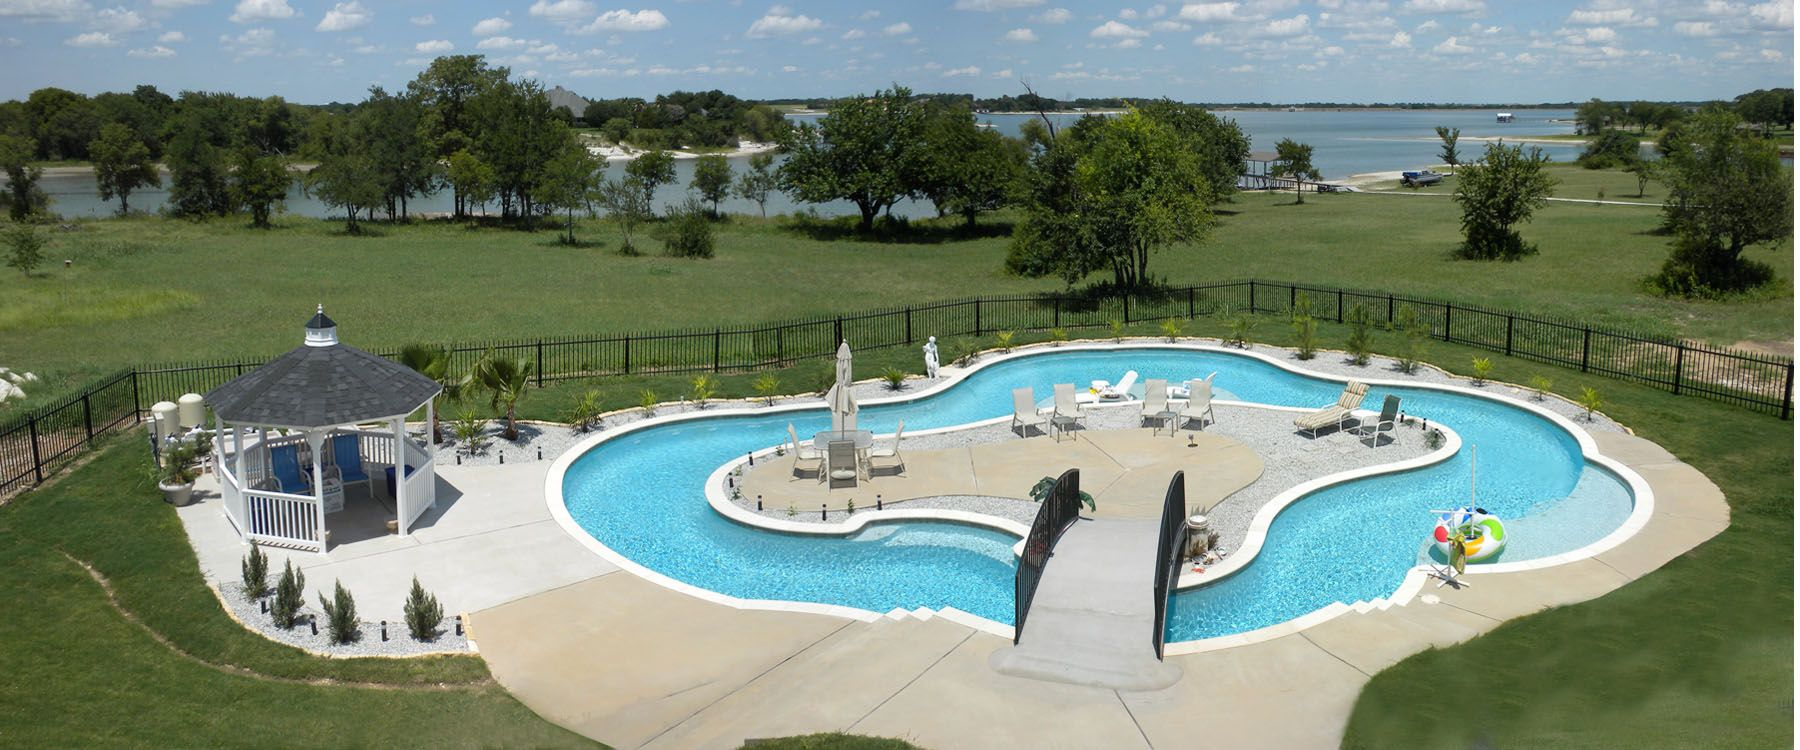 Residential lazy river pool light commercial luxury for Residential swimming pool designs